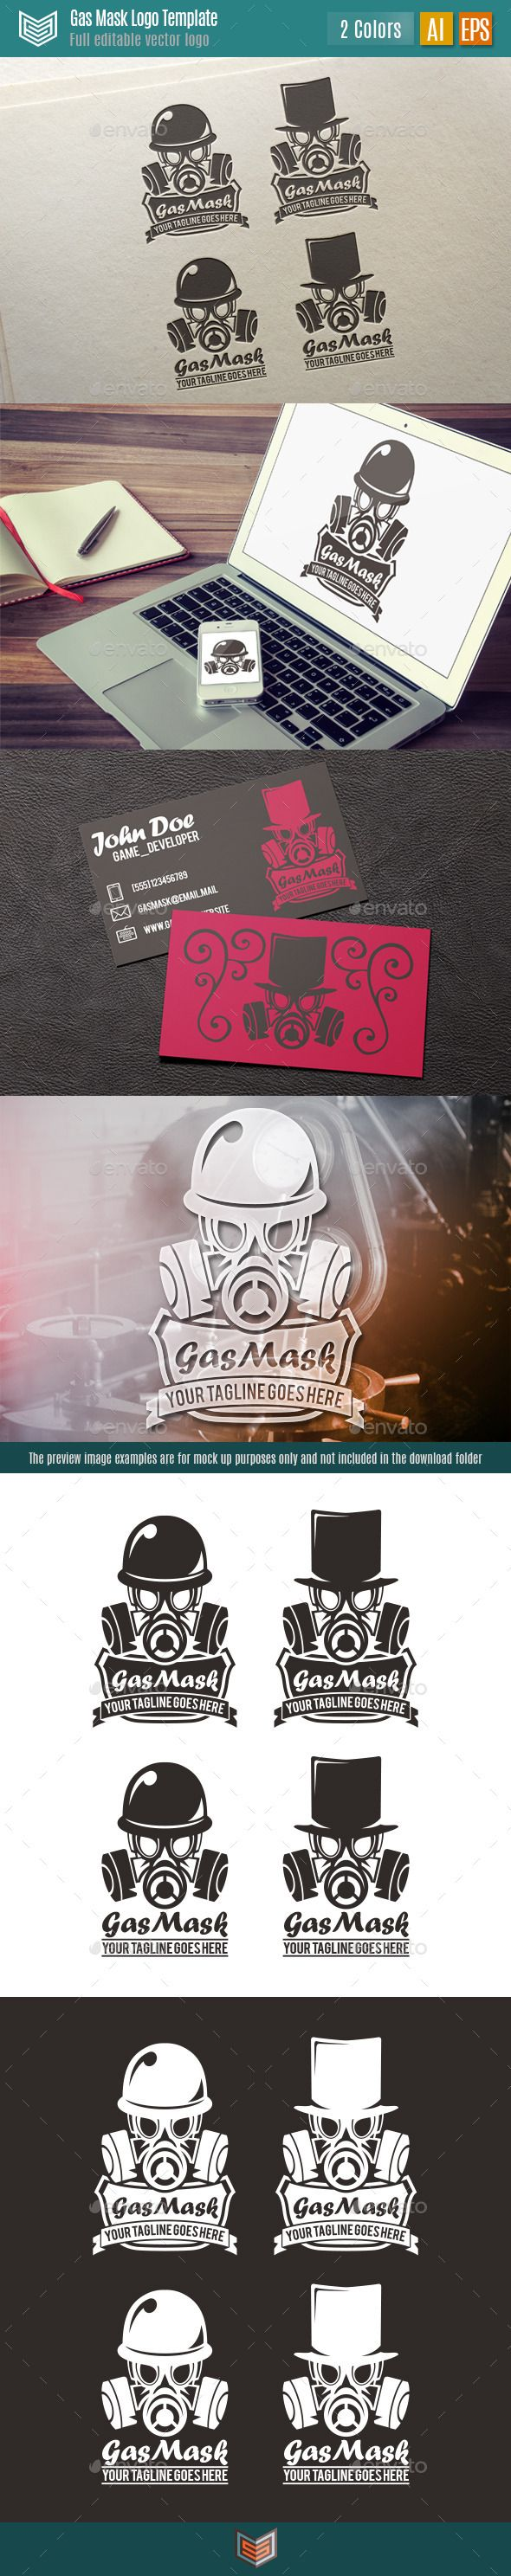 Gasmask Logo. Gasmask is a vintage look logo, has a style reminiscent of steampunk or retro futuristic. Is available with two types of hat: a military helmet and a stylish top hat. Also in the same file are available two styles of logo, framed and unframed. It can be used for multiple purposes and different types of businesses, studies, clans, startups, branding, etc.